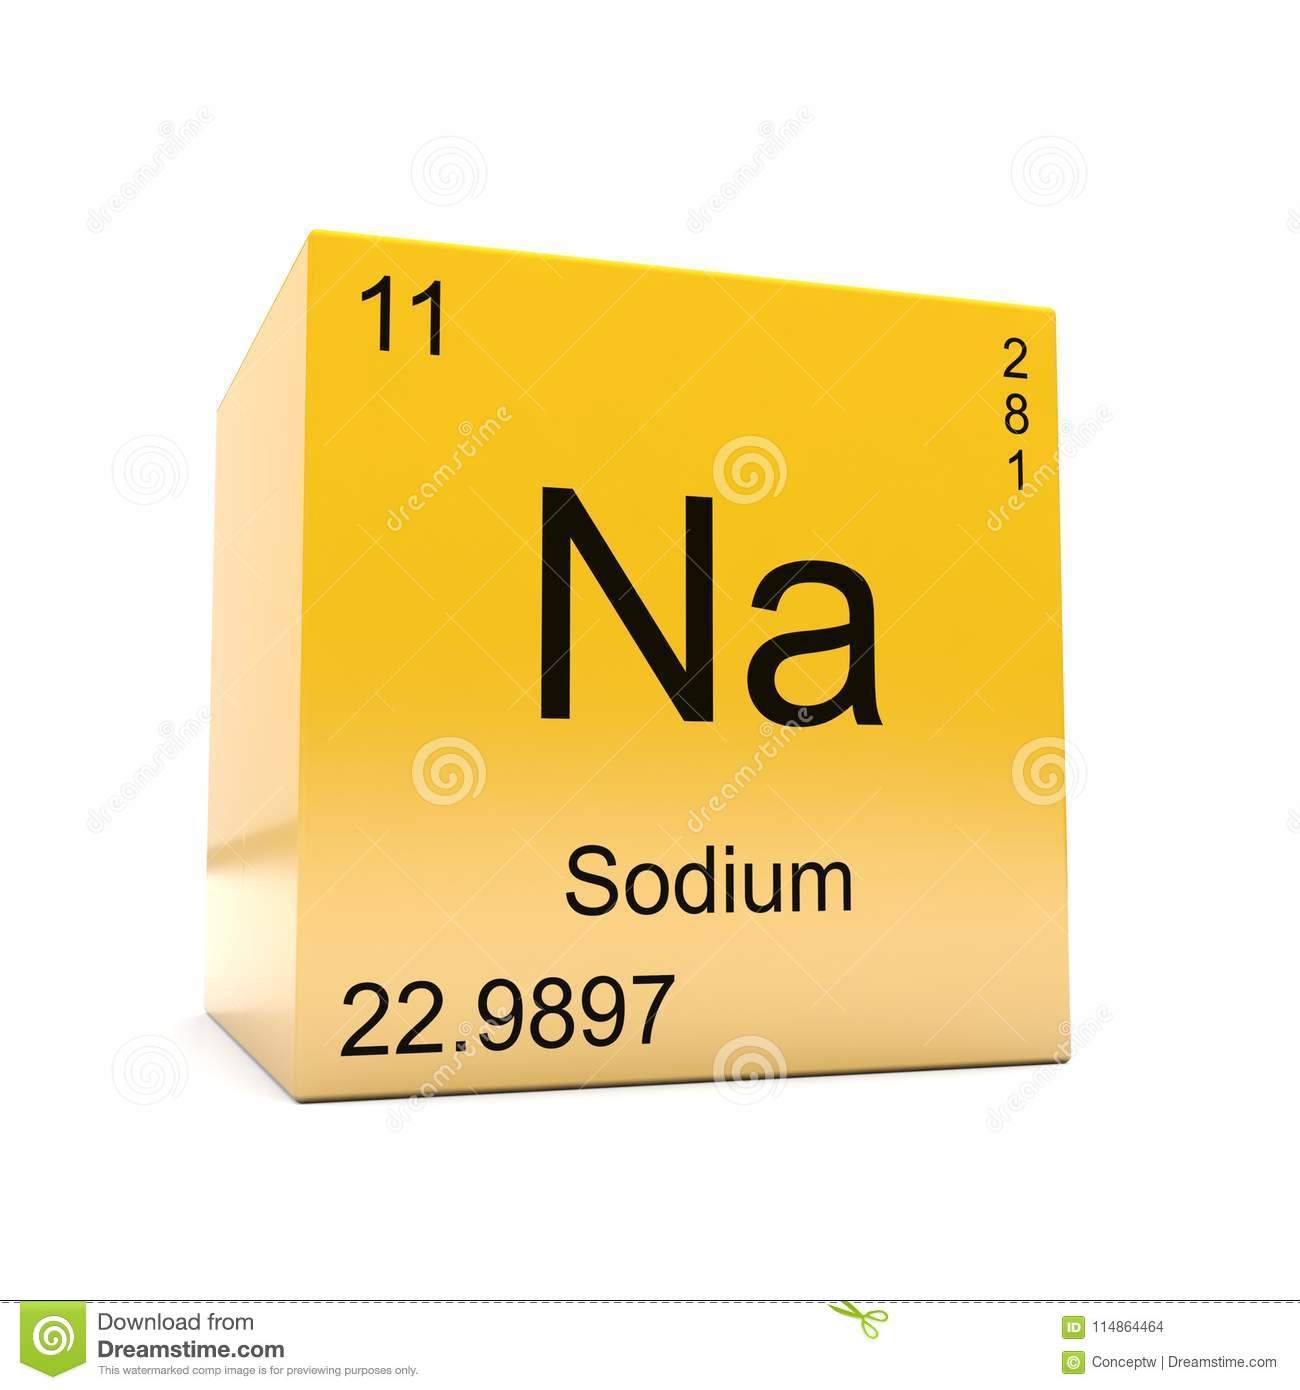 Sodium Chemical Element Symbol From Periodic Table Stock